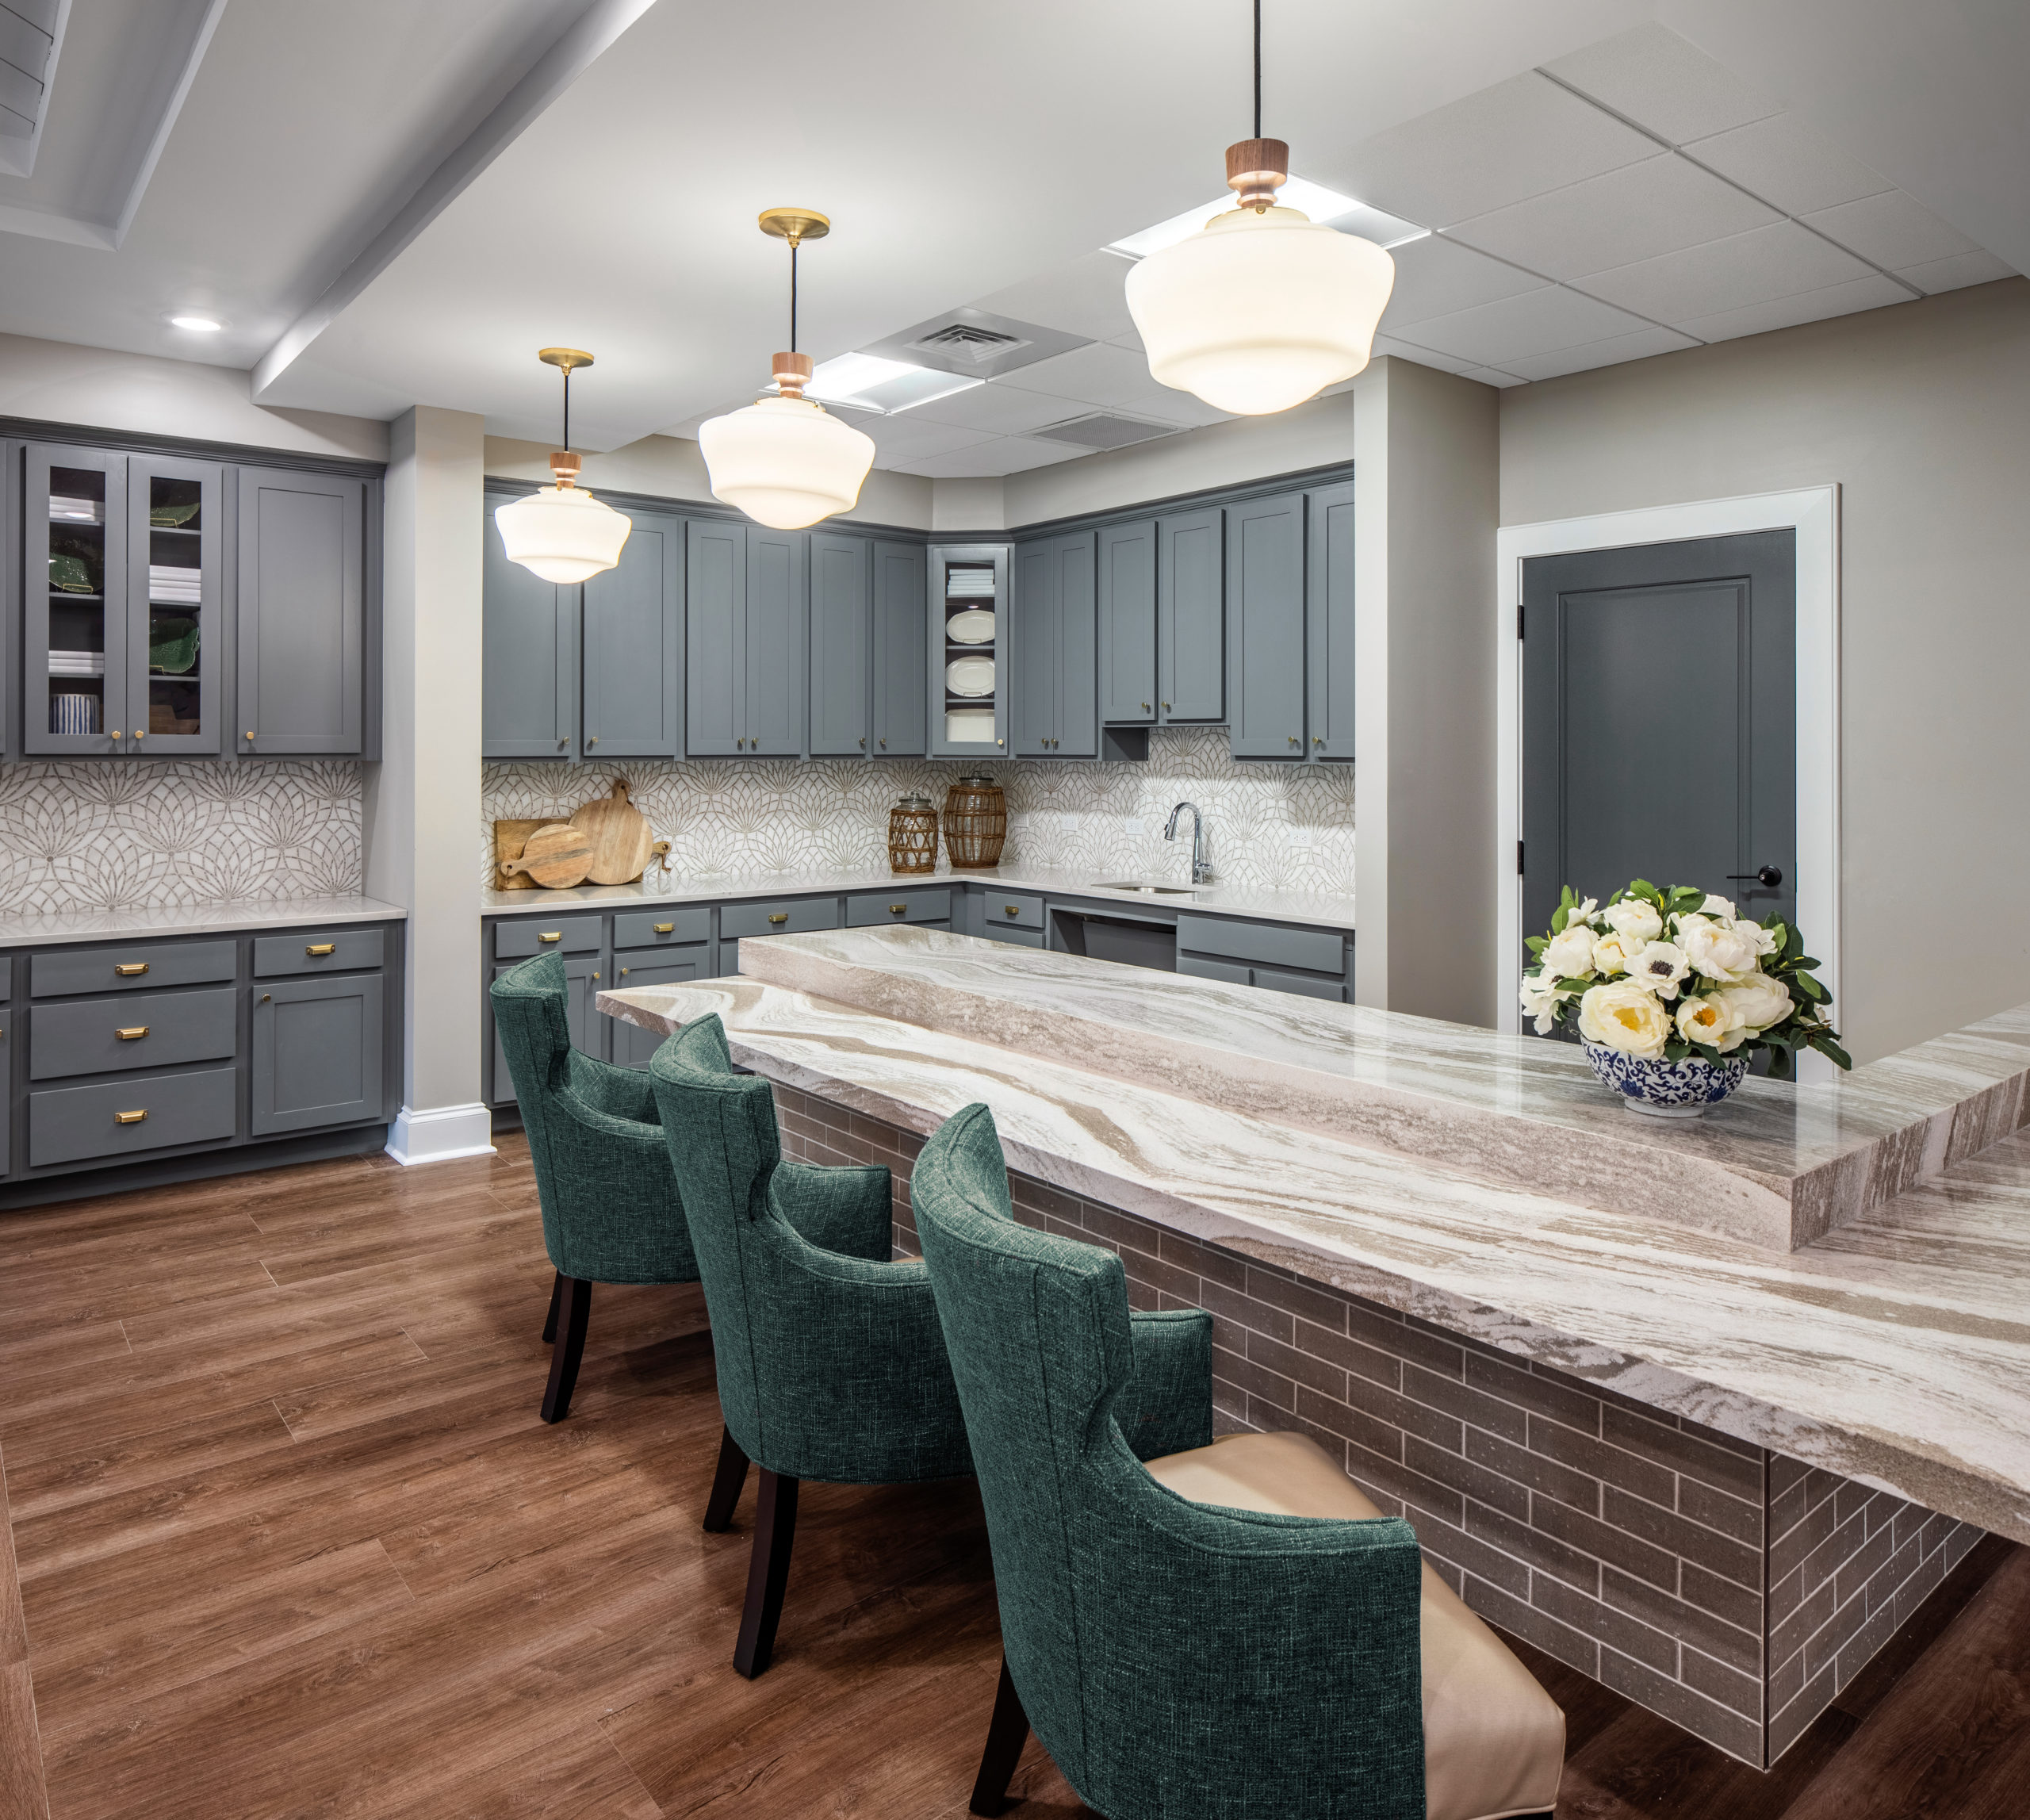 Longleaf memory care dining room bar with three green chairs and grey cabinets at back, three white light fixtures hanging